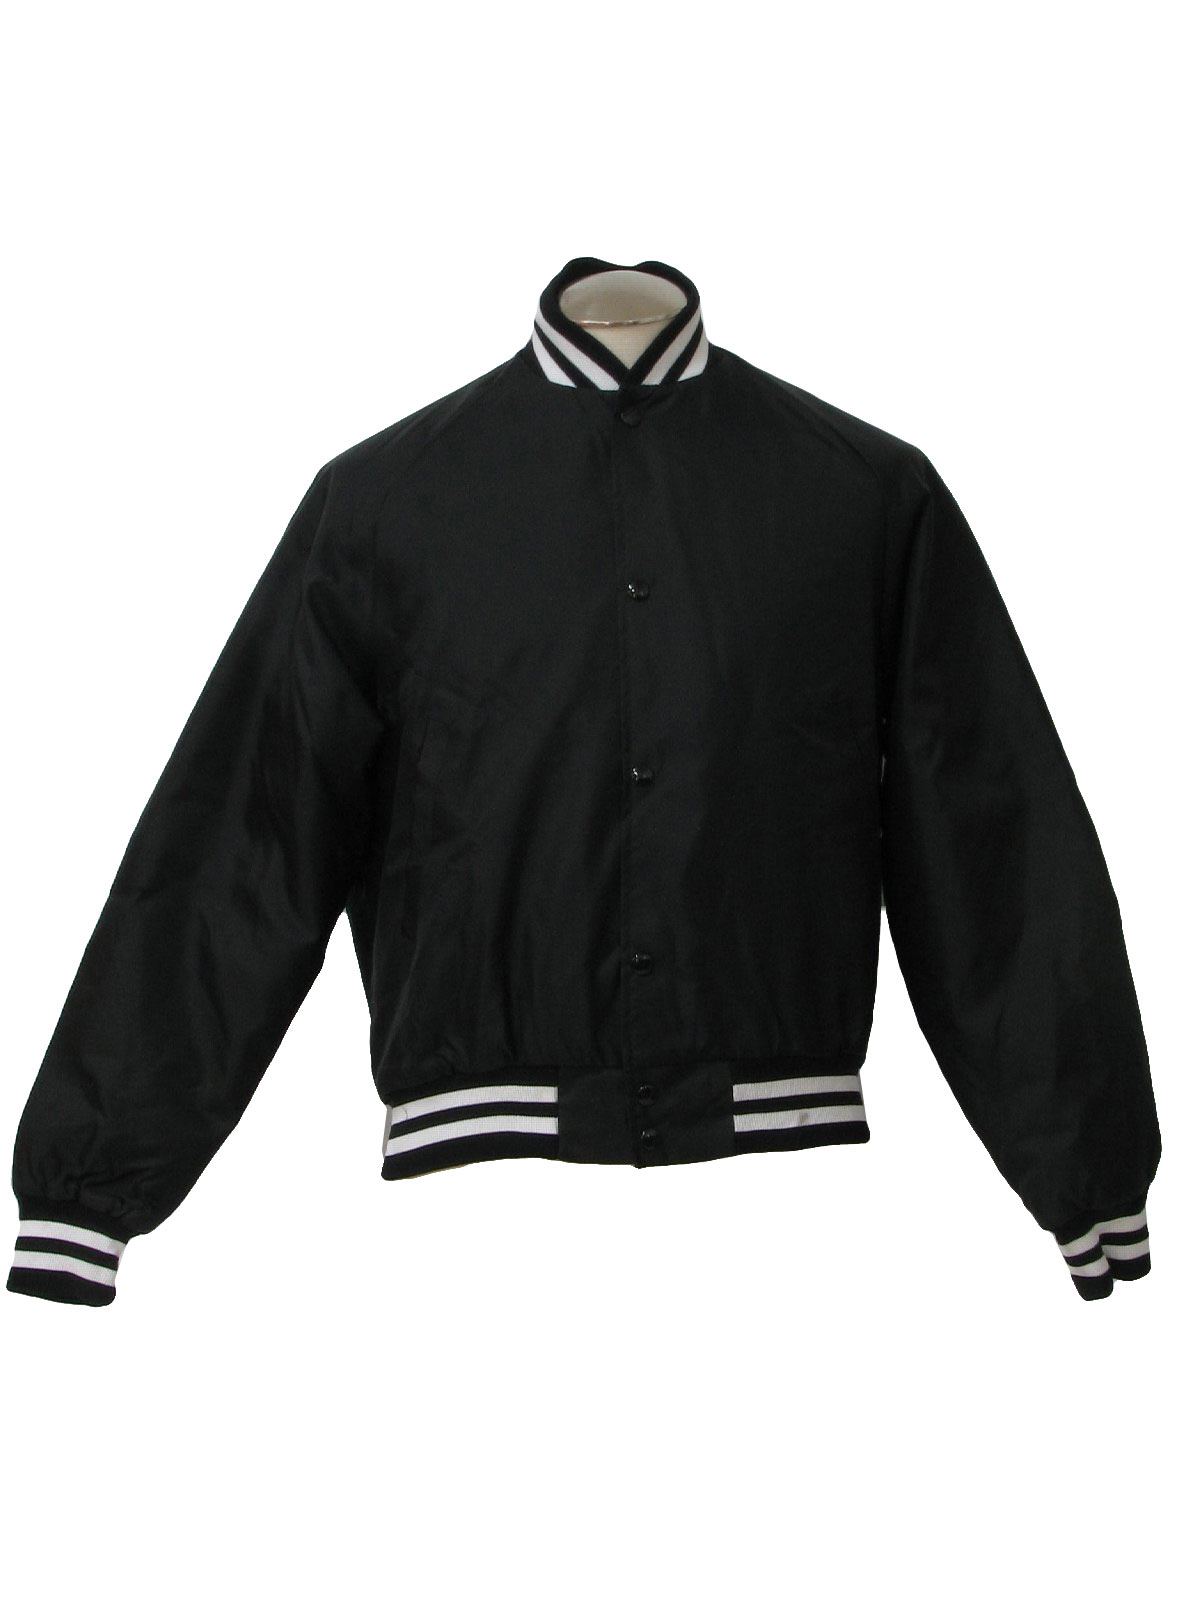 Westark 80's Vintage Jacket: 80s -Westark- Mens black and white ...